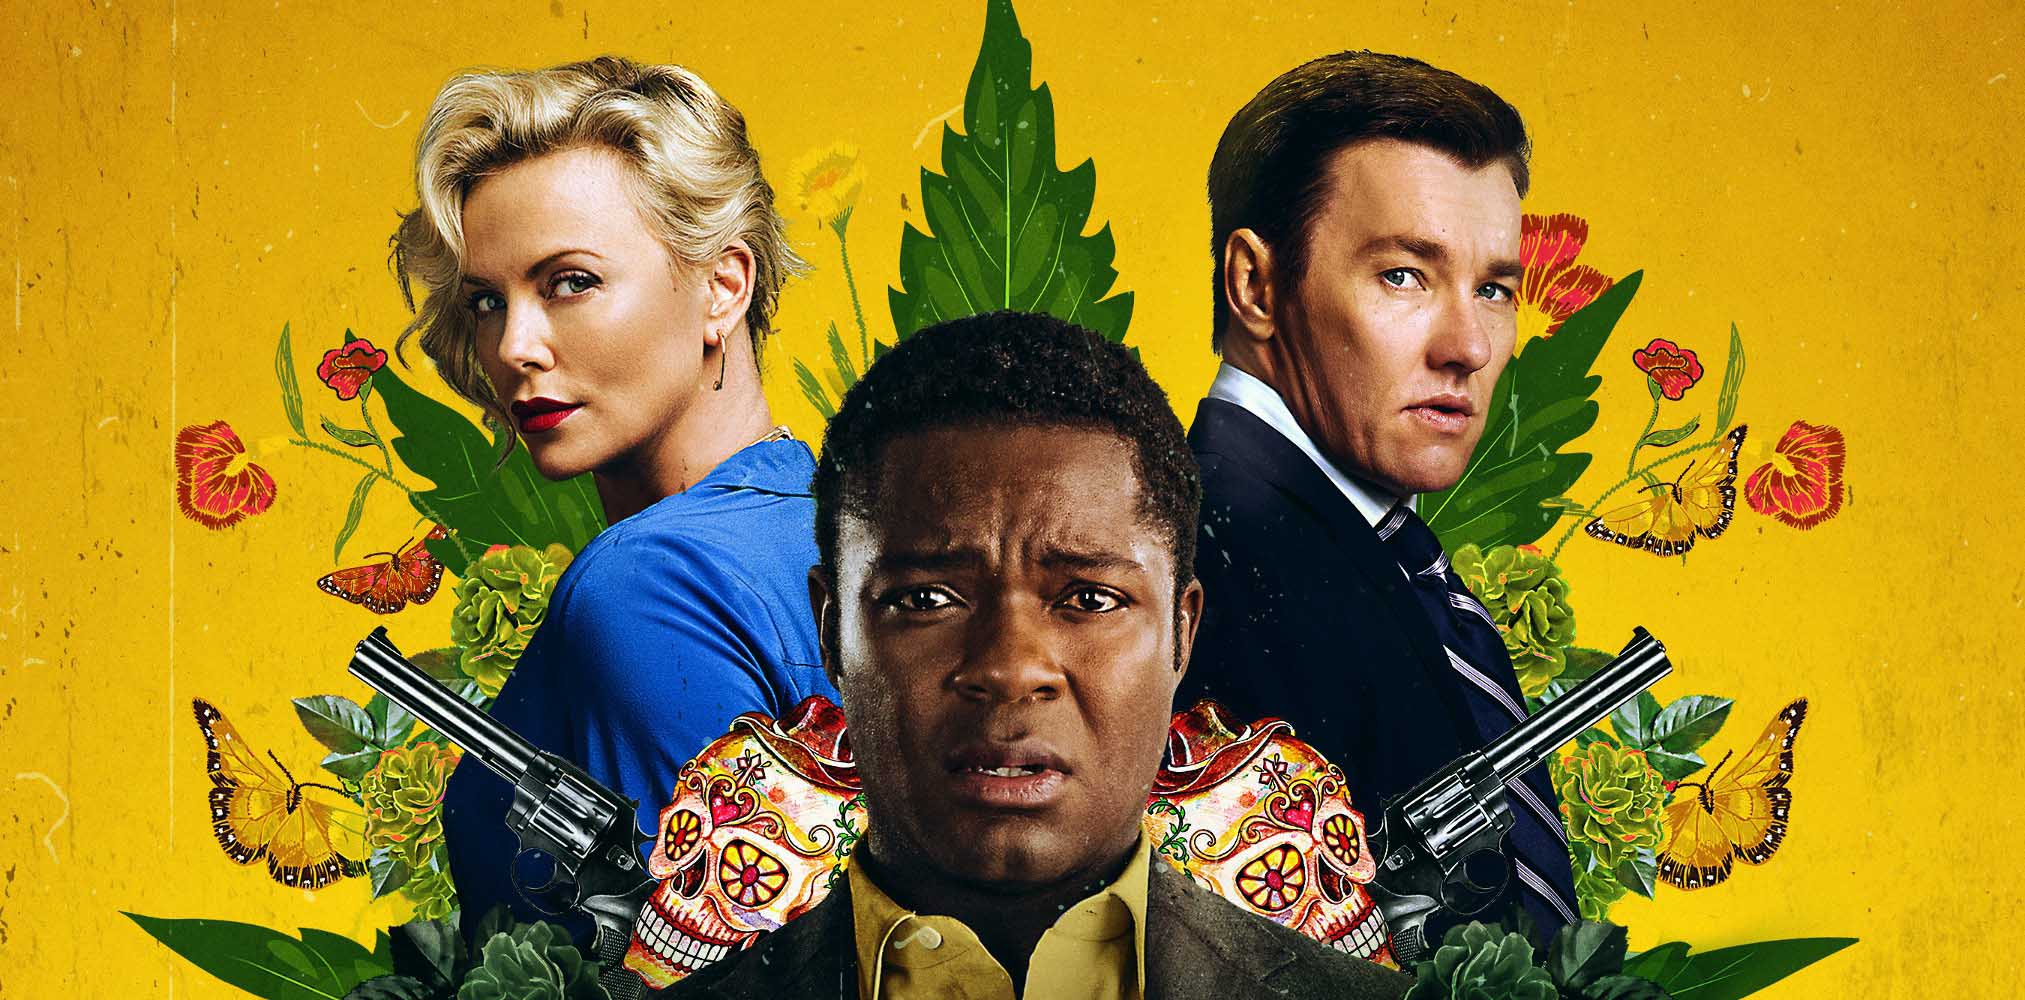 A mild-mannered businessman finds himself at the mercy of local drug lords and a morally conflicted black-ops mercenary in Nash Edgerton's 'Gringo'.